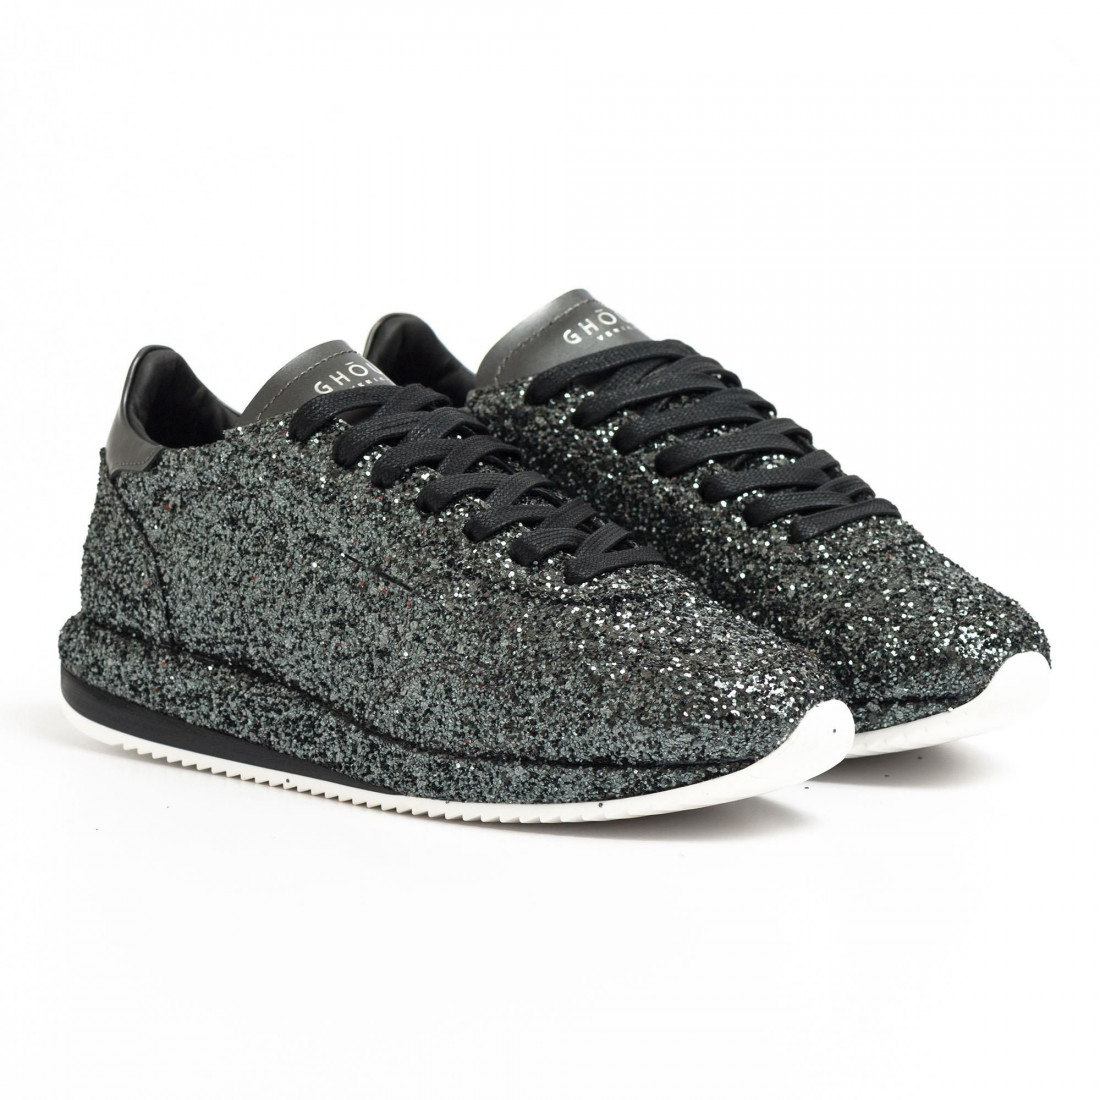 sneakers woman ghoud g2wlgt38 glitter  3491